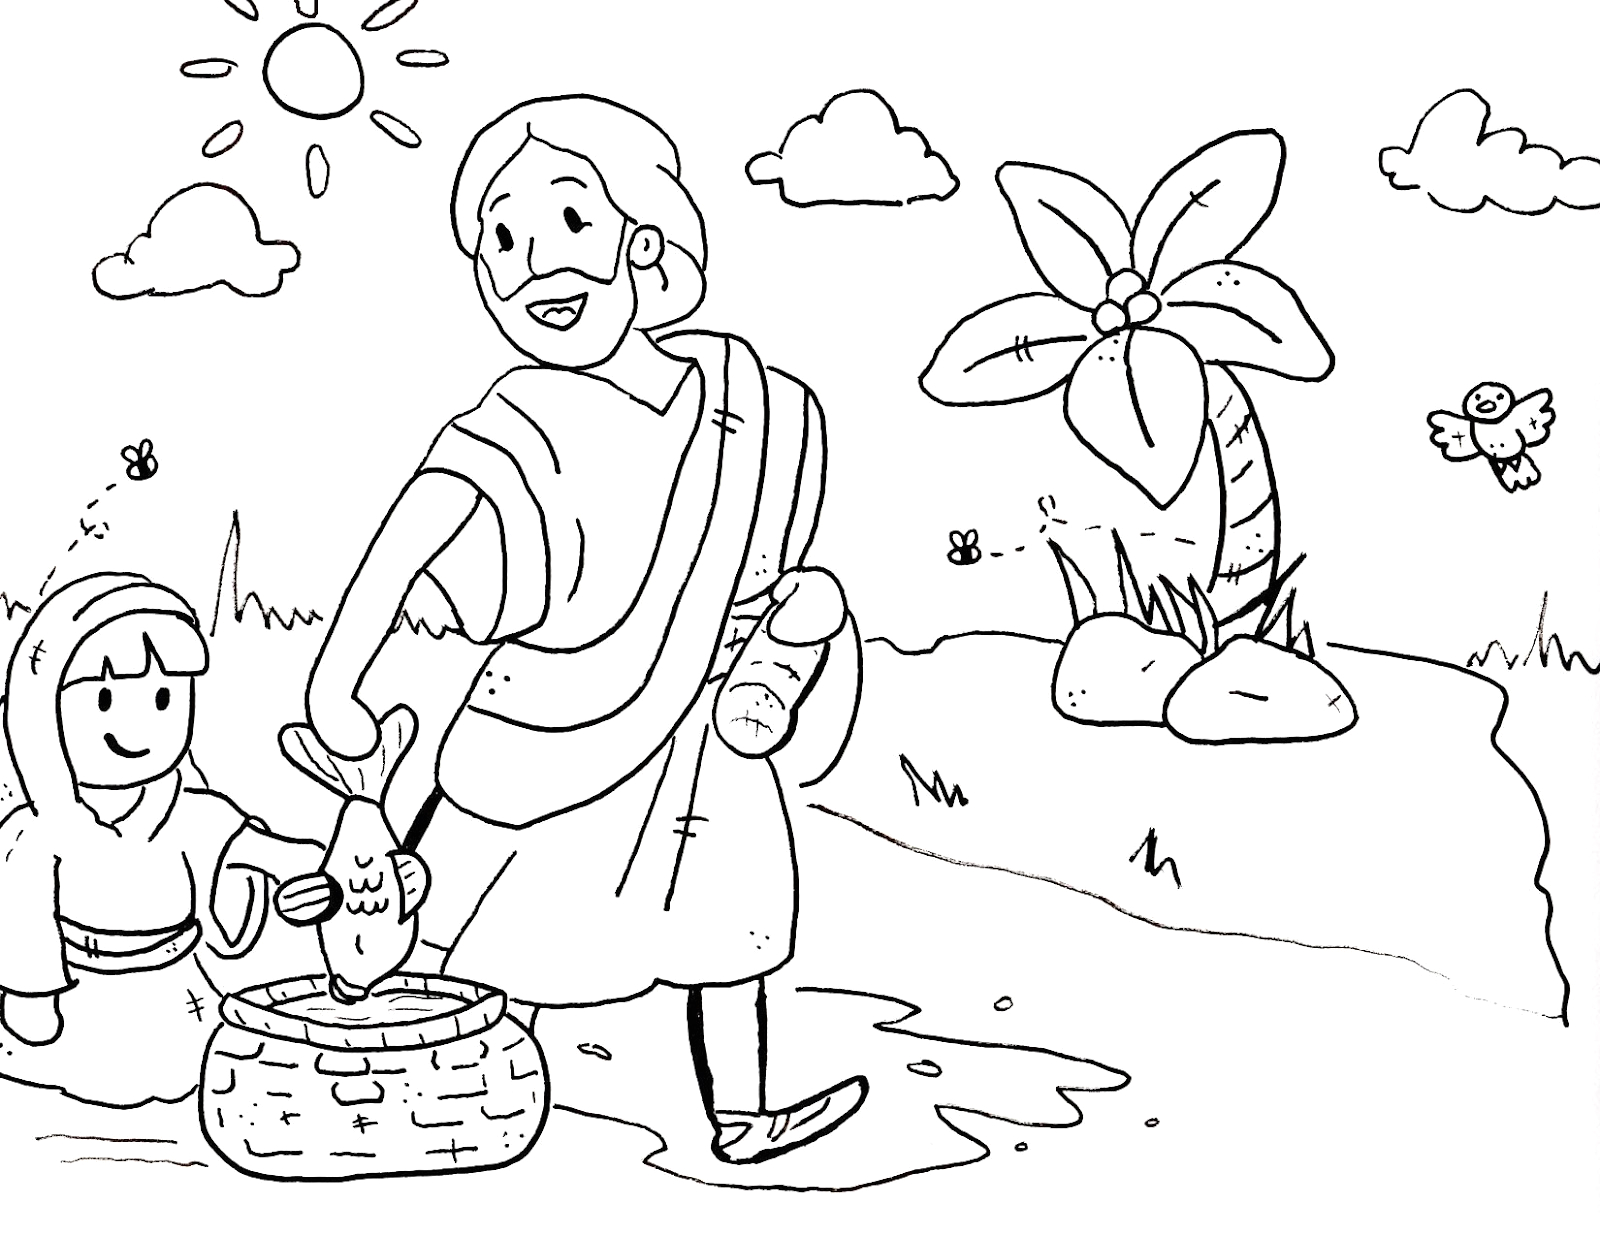 Free Printable Coloring Pages for Preschool Sunday School Scraphappy Paper Crafter Free Digis Great for Sunday